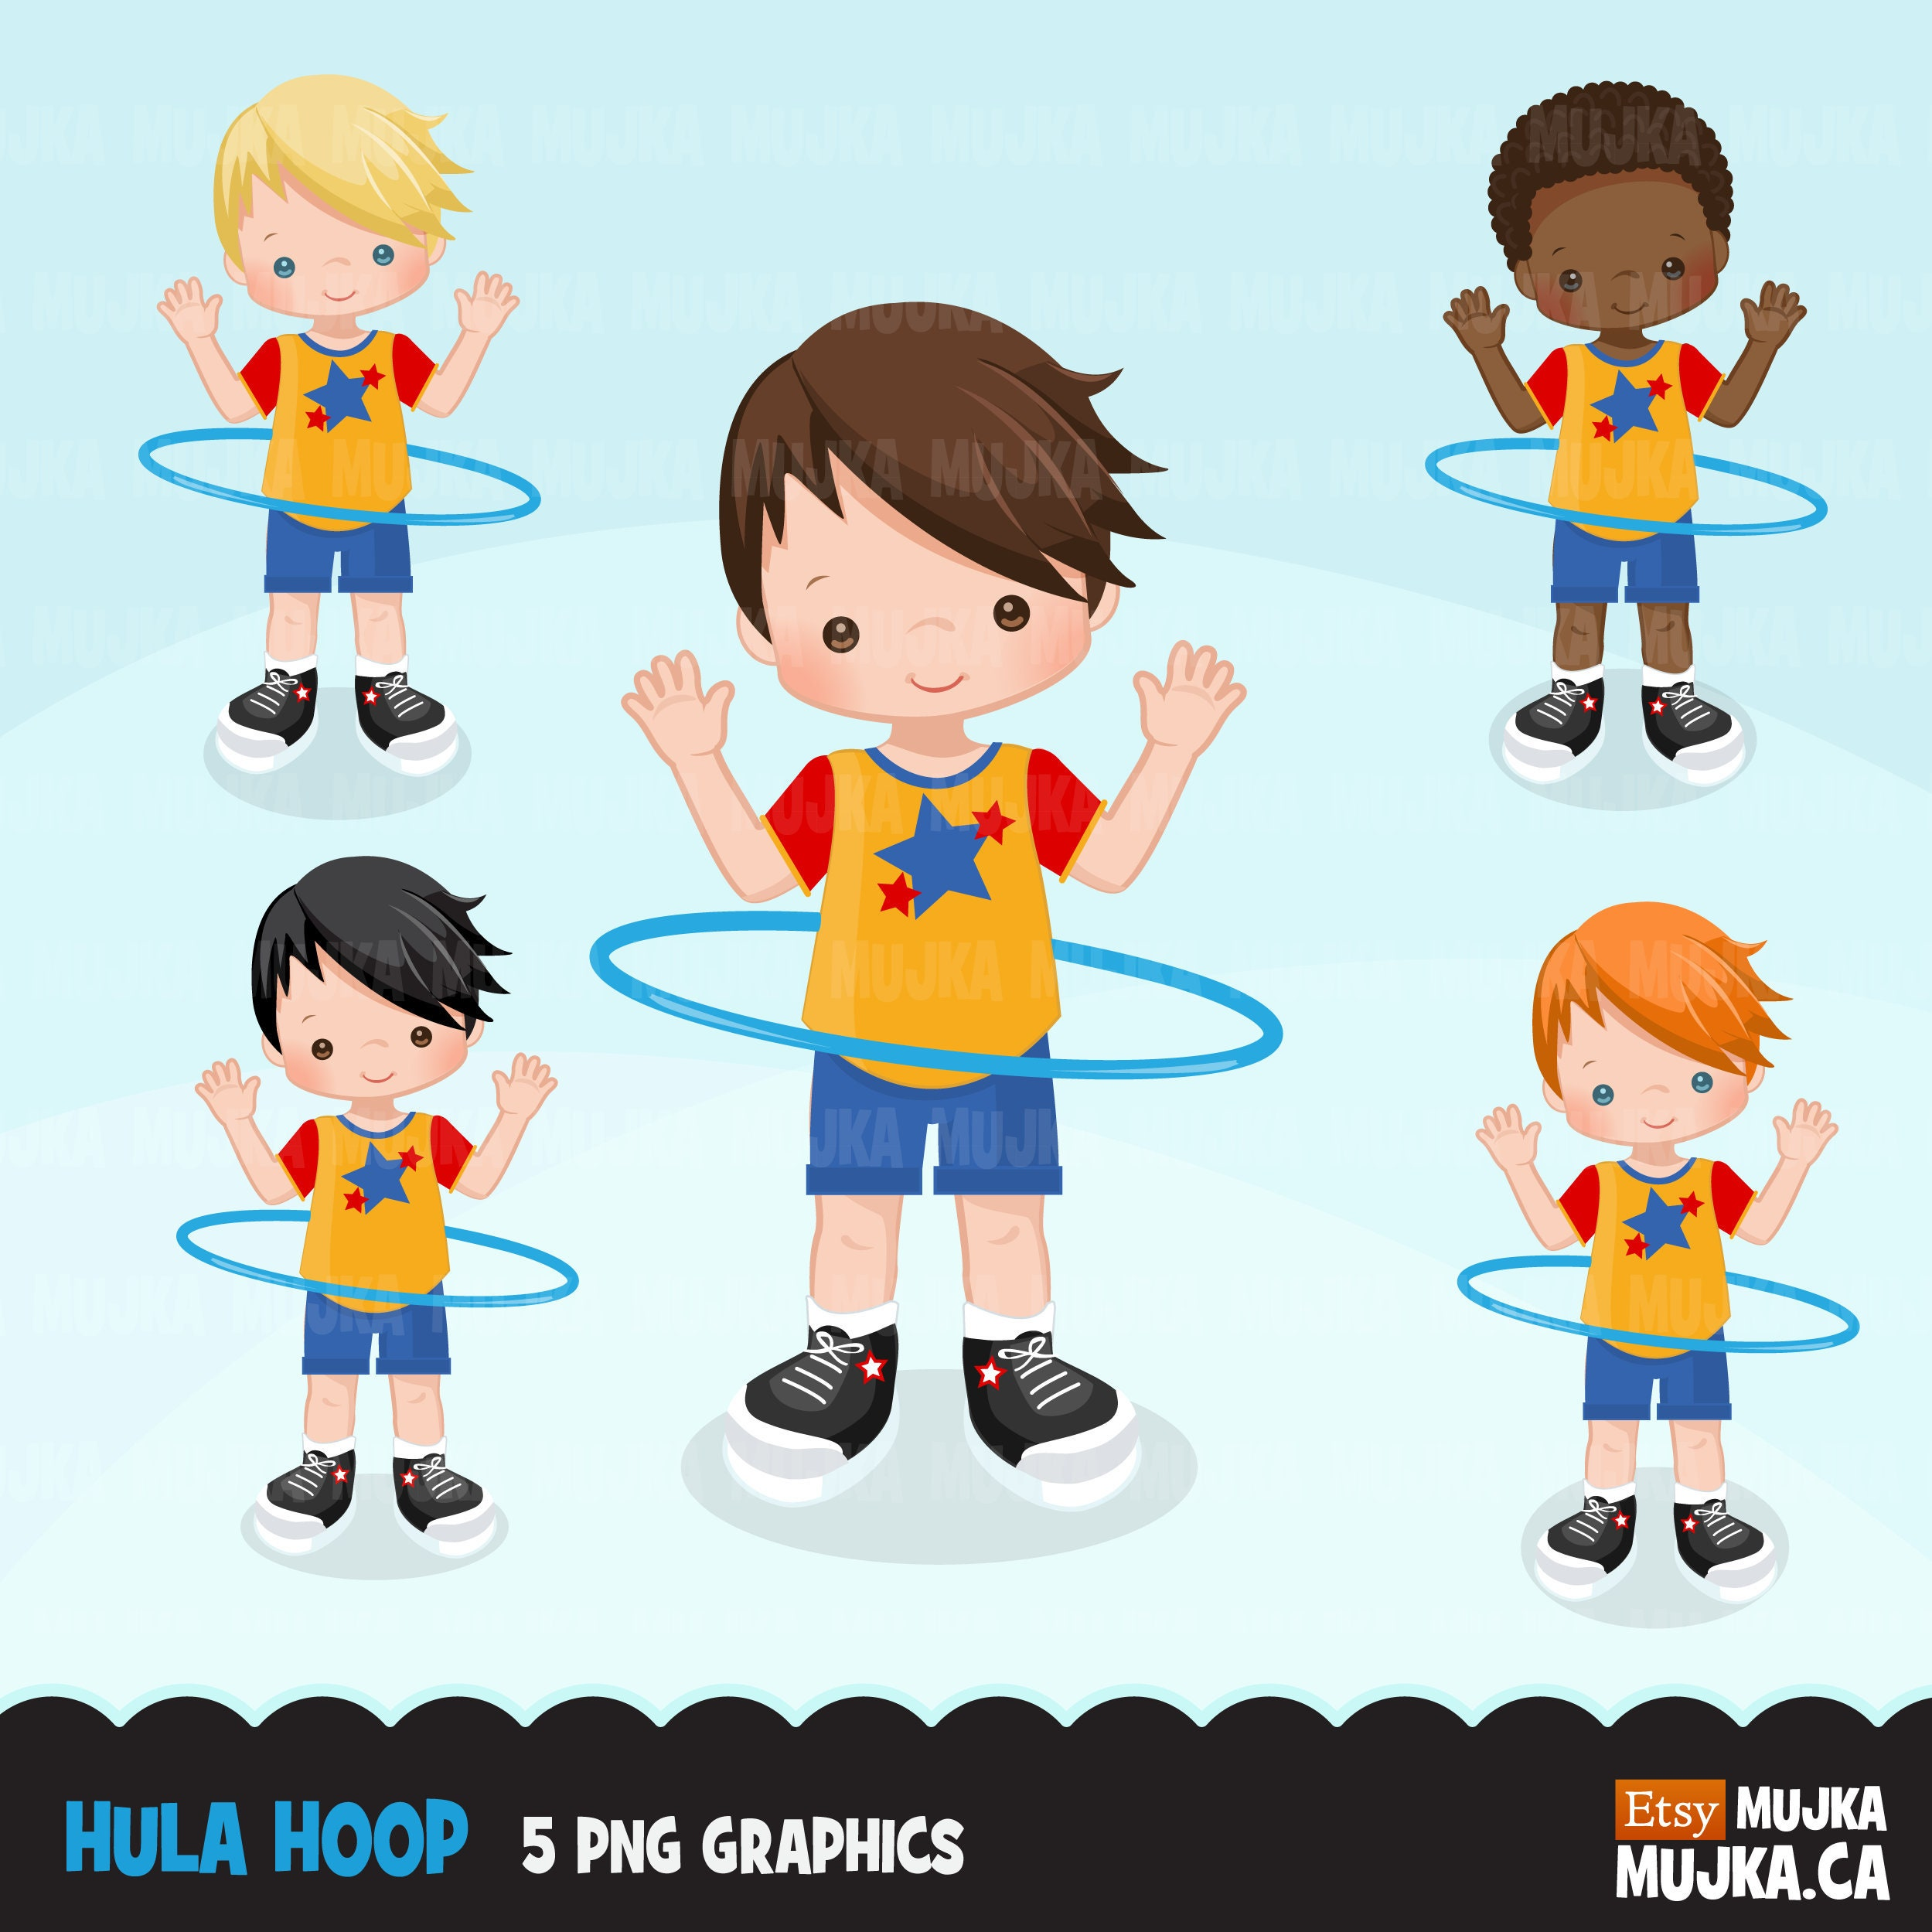 Hula hoop boys Clipart Outdoors activity hula hoop graphics